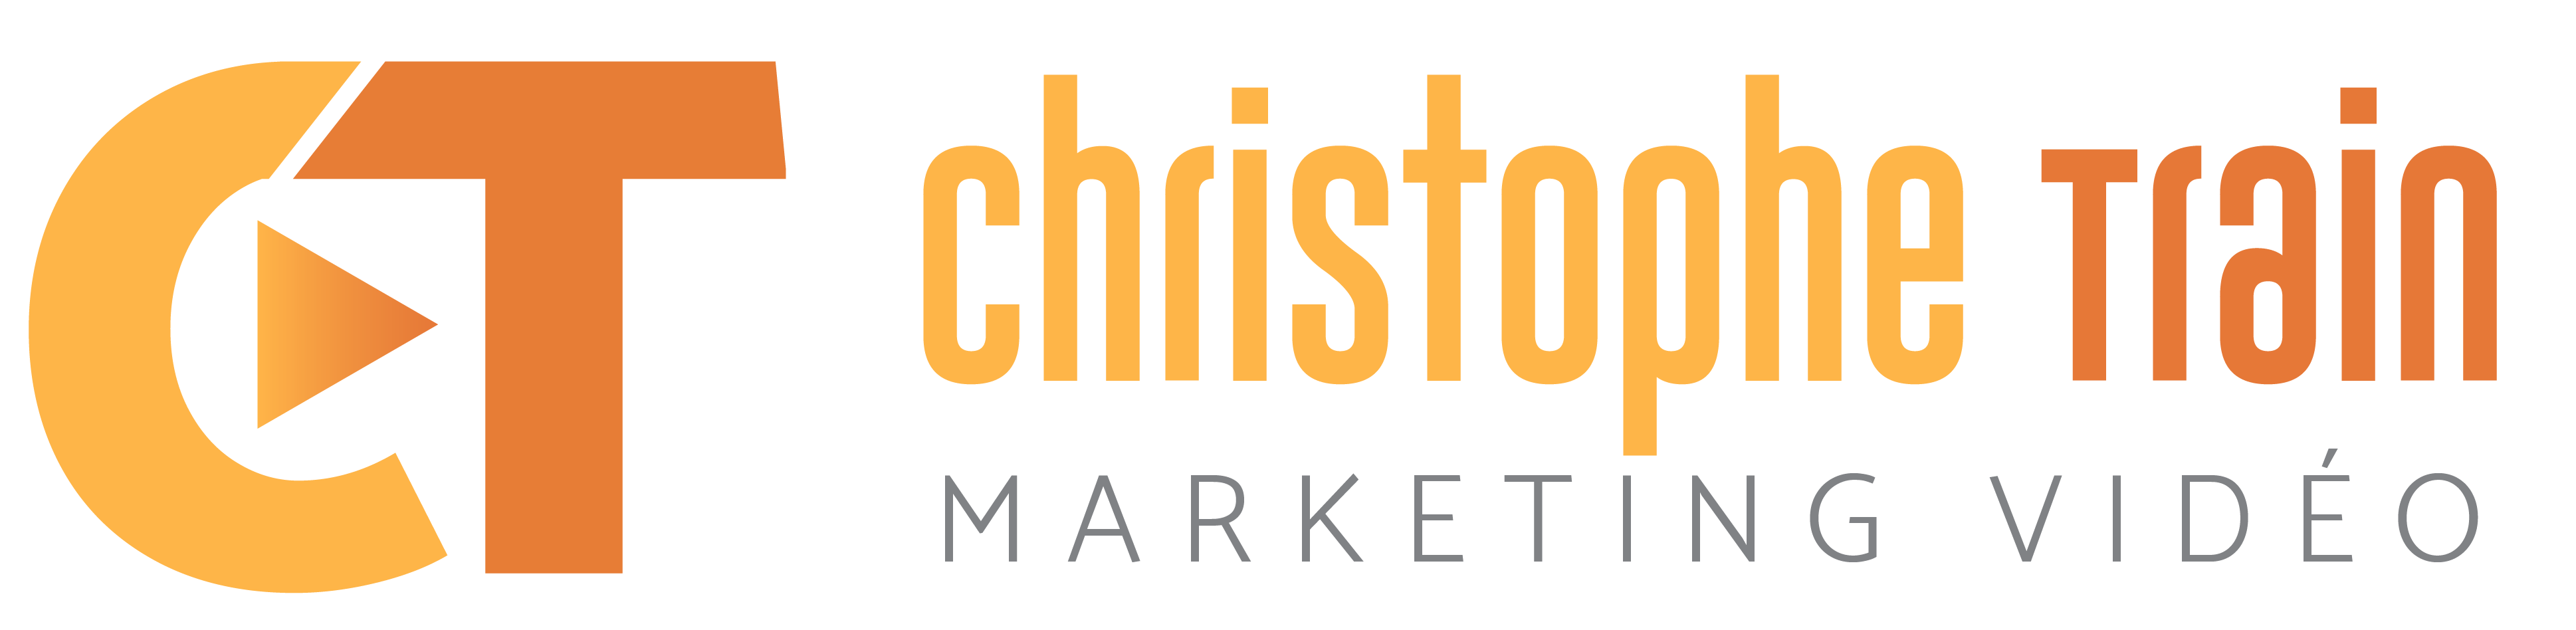 Christophe Train Marketing Video